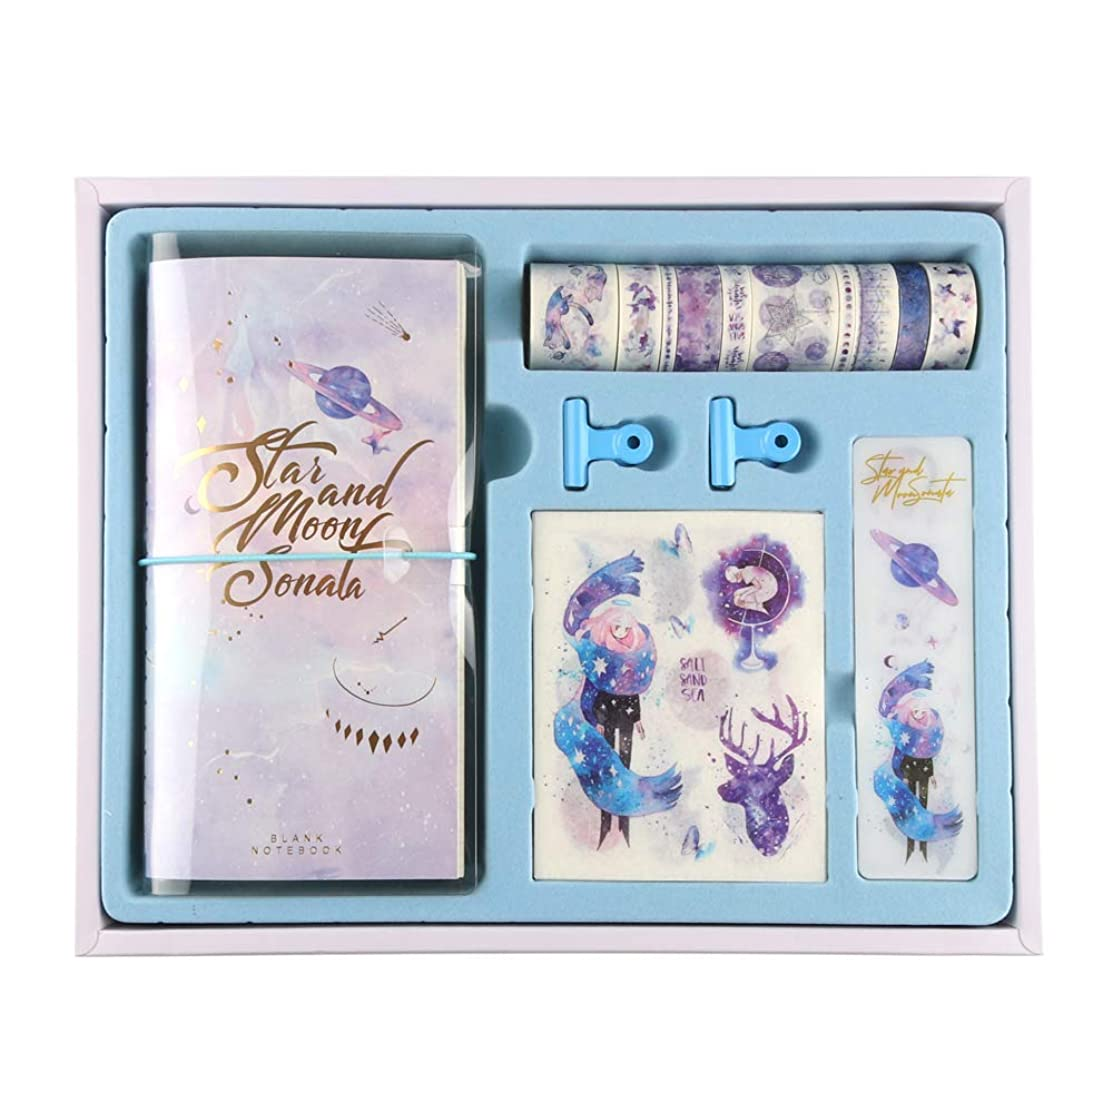 Planners Scrapbook Box Kits Craft Gifts-10rolls Washi Masking Tape,3Notebook,4Tape Dispense Board,2Metal Clips,20Stickers(About 150Pieces) for DIY,Scrapbooking,Wrapping (Brilliant Stars)